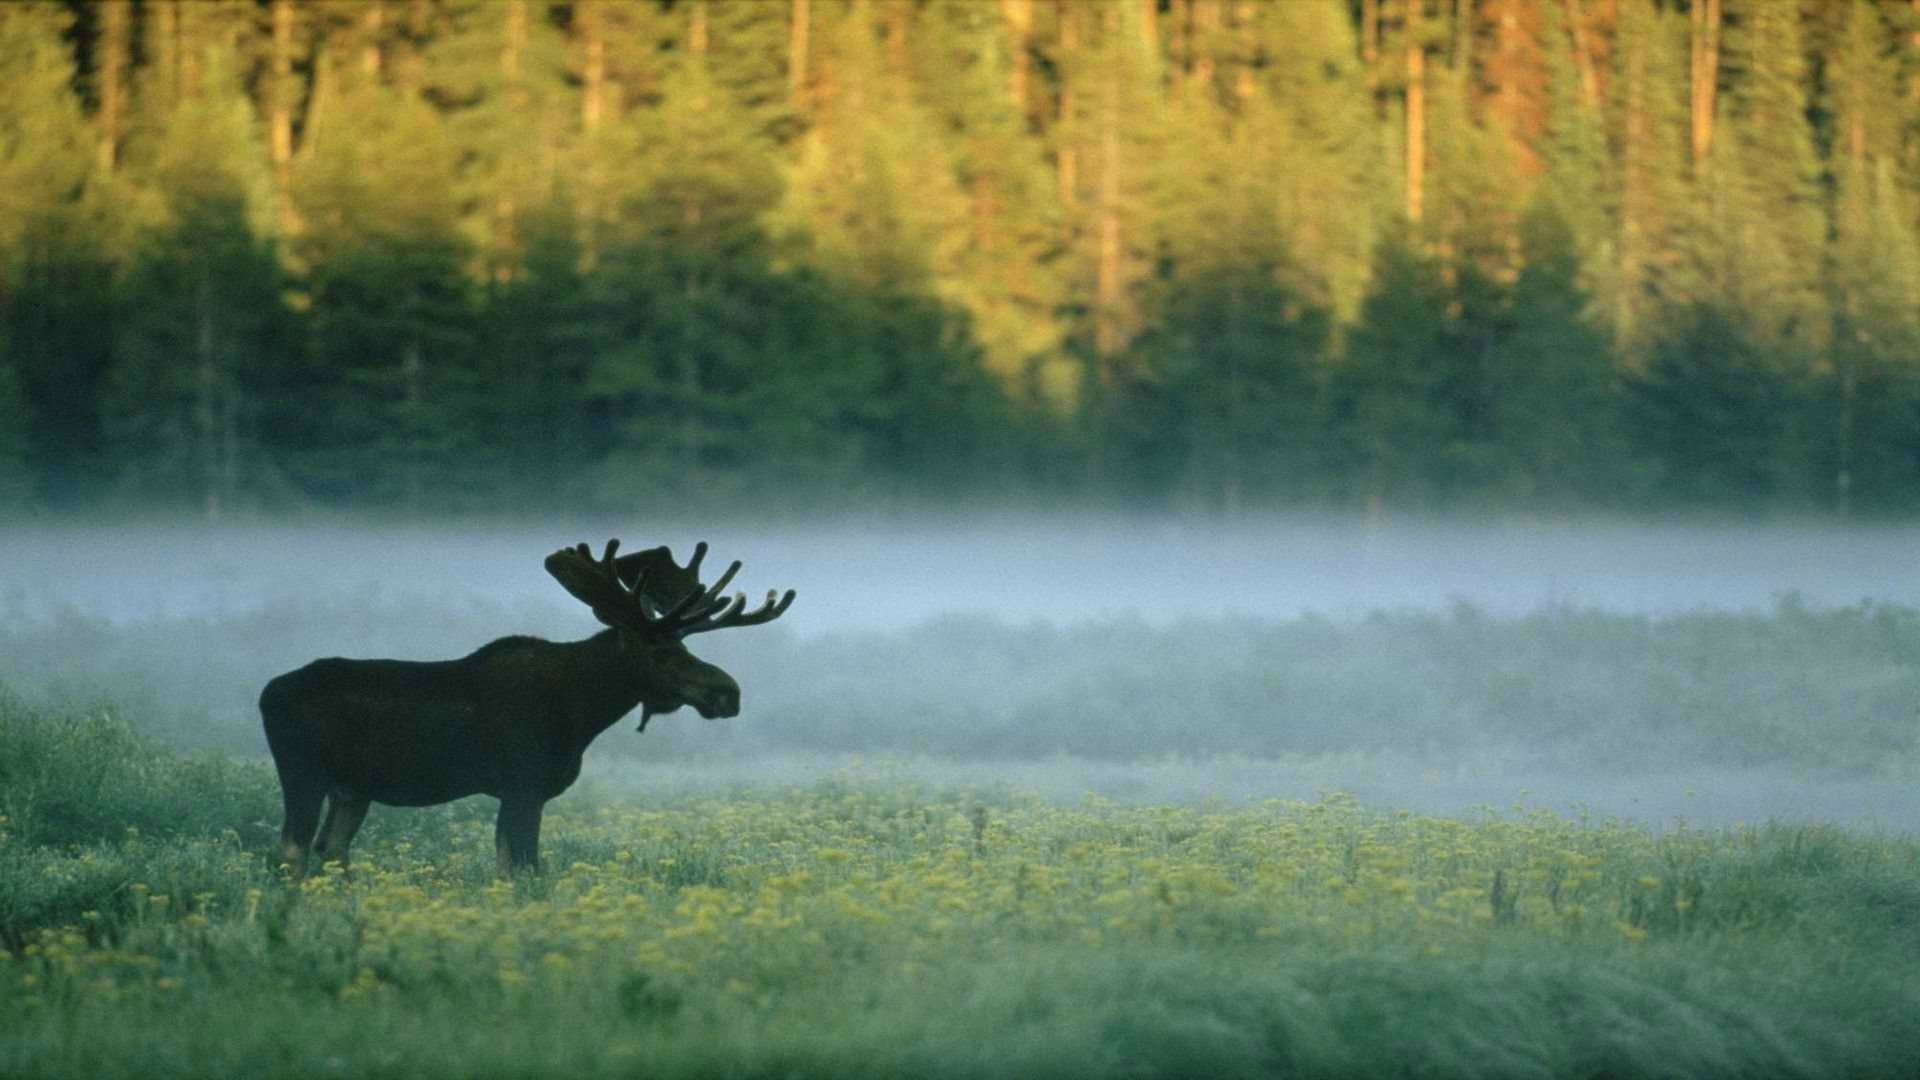 Background Wallpaper Hd Fall Fog Forest Moose Nature Animals Wallpapers Hd Desktop And